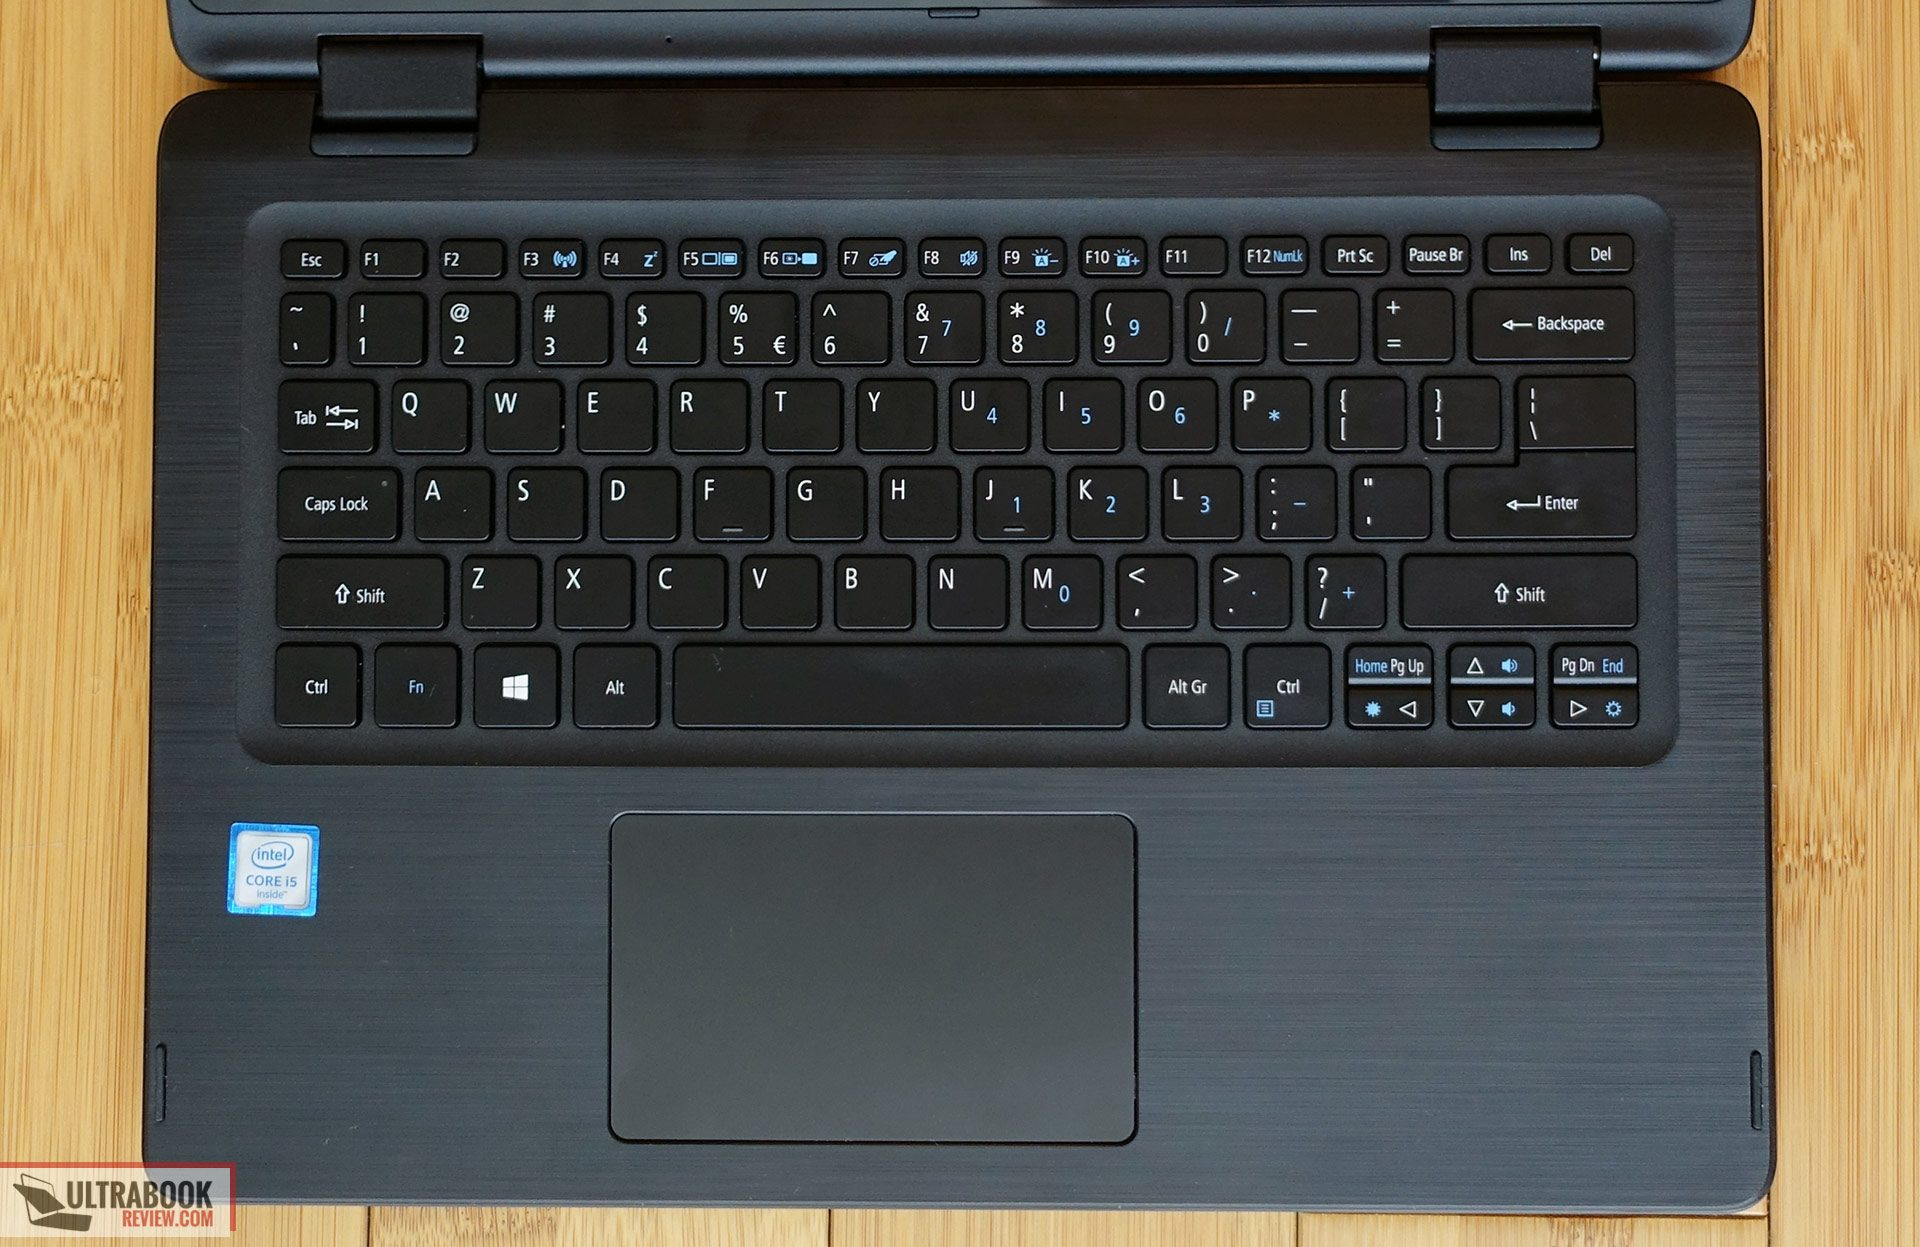 Notebook samsung brasil - The Keyboard Is Also Backlit And You Can Choose Between Two Intensity Levels However Both Are Dim And Barely Able To Light Up The Keys On The Other Hand